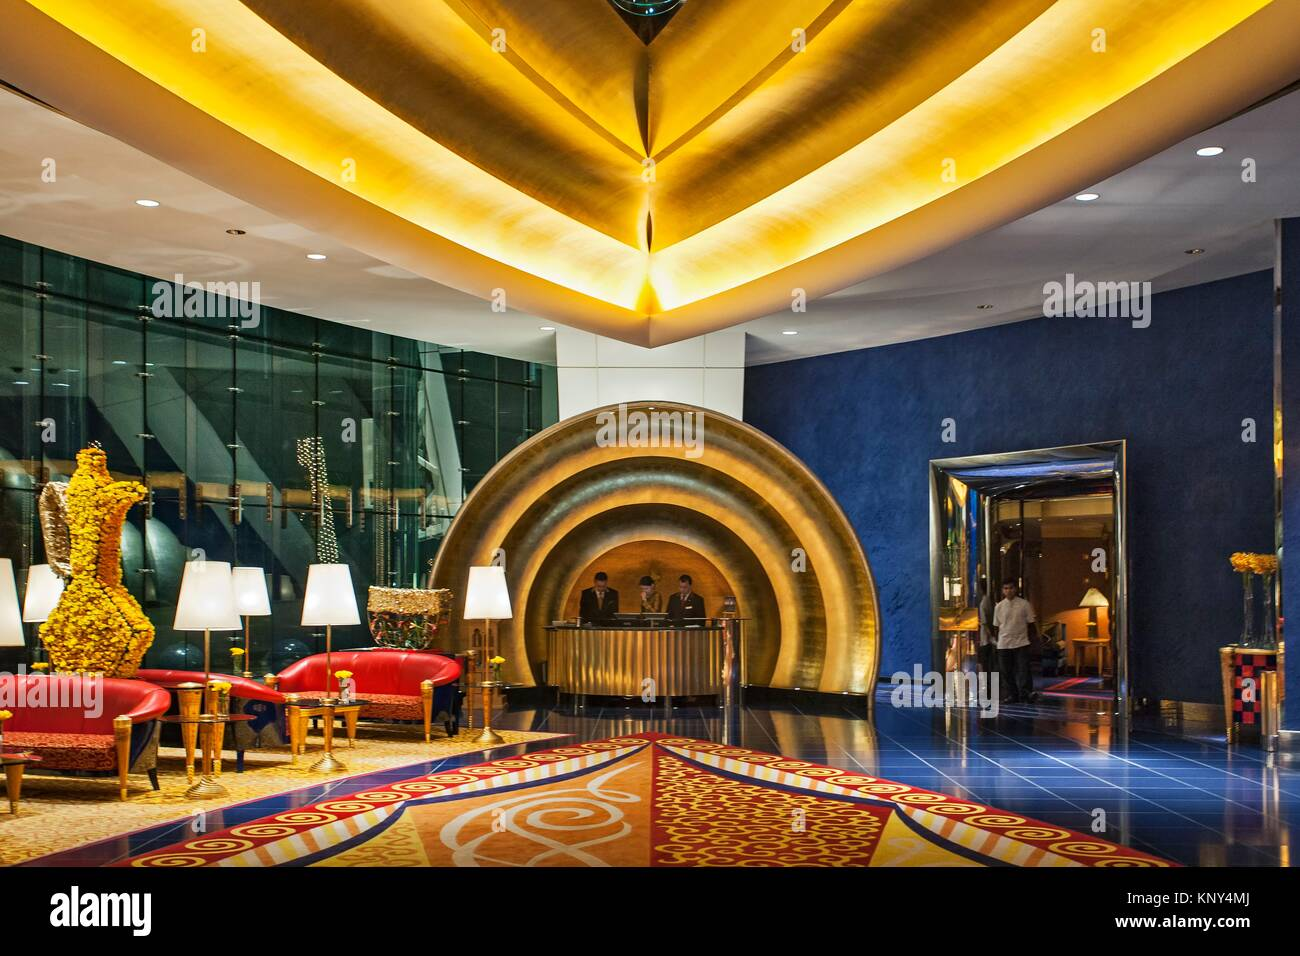 Burj Al Arab Hotel Reception High Resolution Stock Photography And Images Alamy